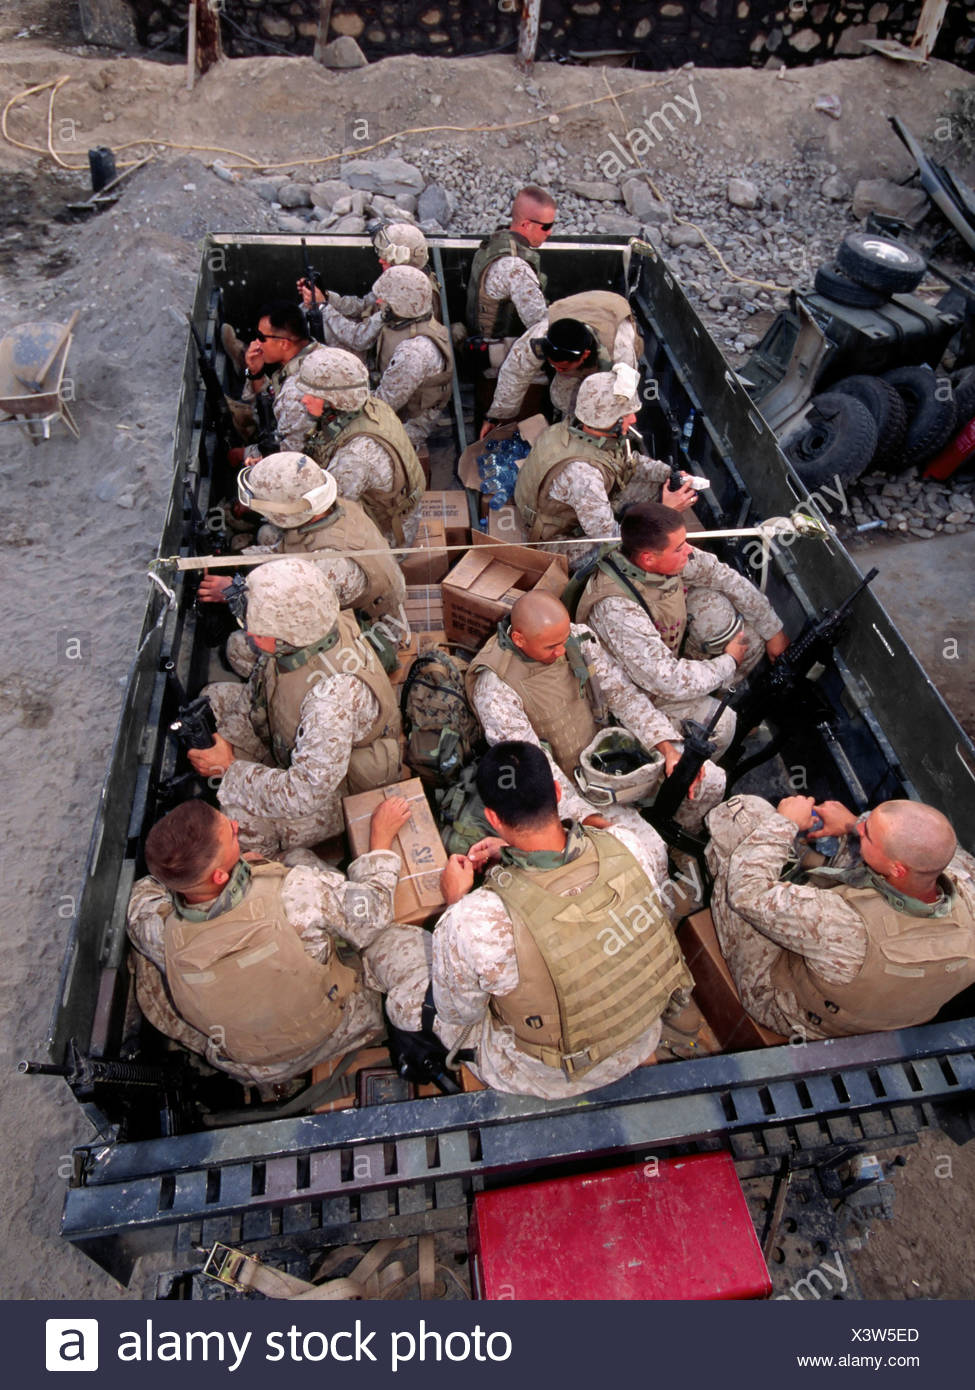 US Marines Loaded into a Large Troop Transport Before Embarking on a Combat Operation in Afghanistan's Eastern Kunar Province - Stock Image